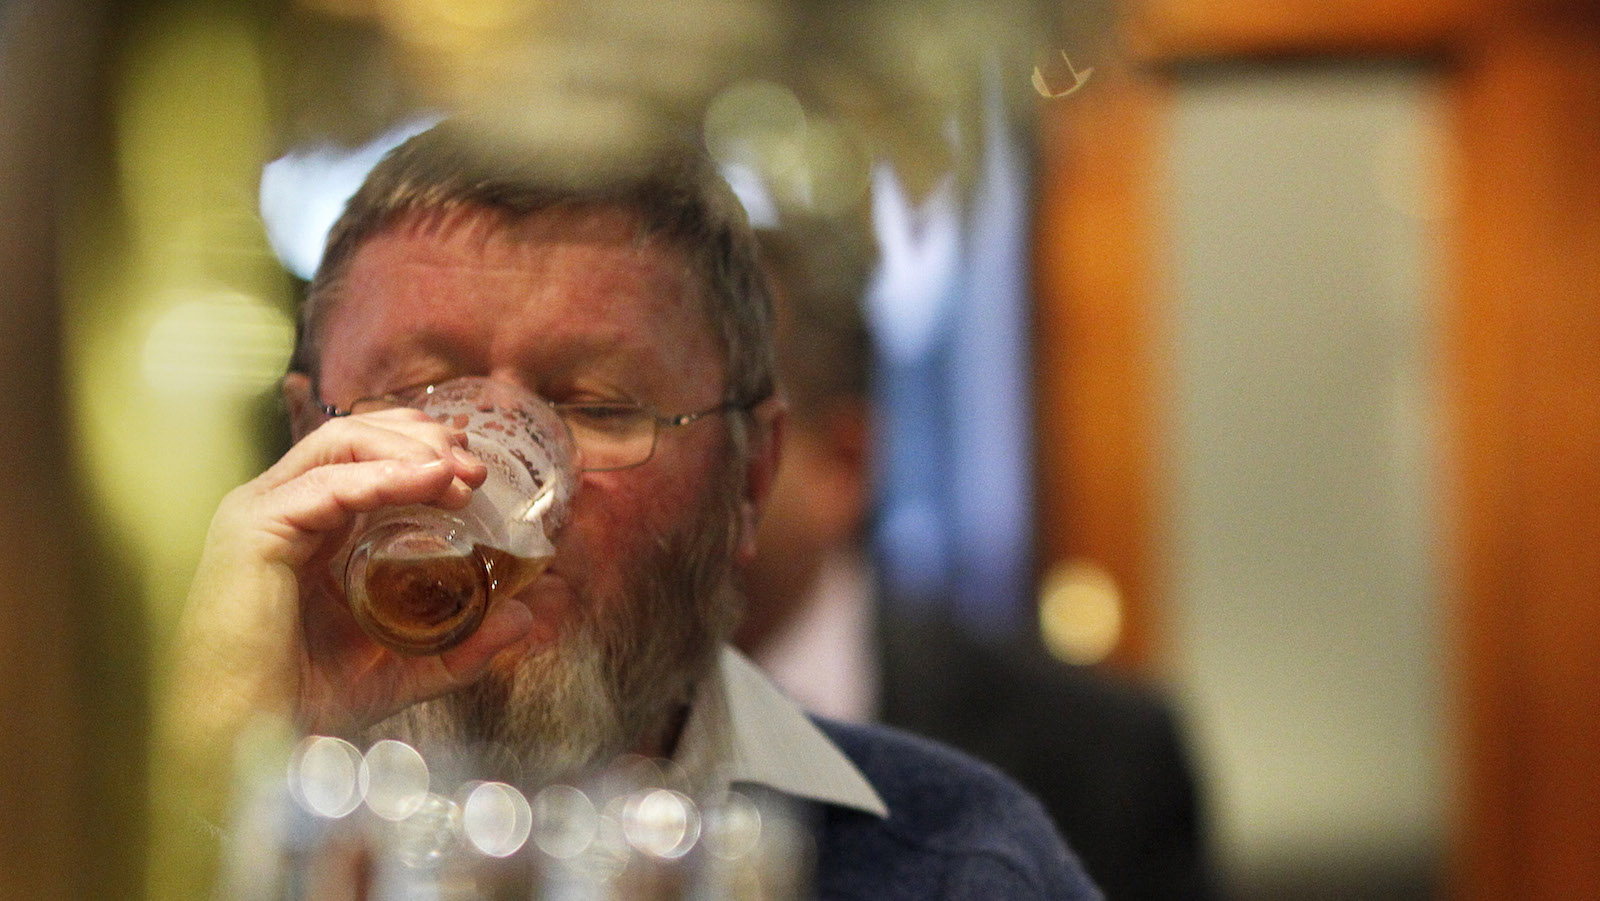 A customer drinks a glass of beer produced by Fosters, at the Occidental Hotel in central Sydney June 21, 2011. Australia's Foster's Group has rejected a A$9.5 billion ($10.1 billion) cash takeover offer from global brewing giant SABMiller as too low, offering only a slim premium for Australia's largest brewer.     REUTERS/Tim Wimborne   (AUSTRALIA - Tags: BUSINESS) - RTR2NWF9